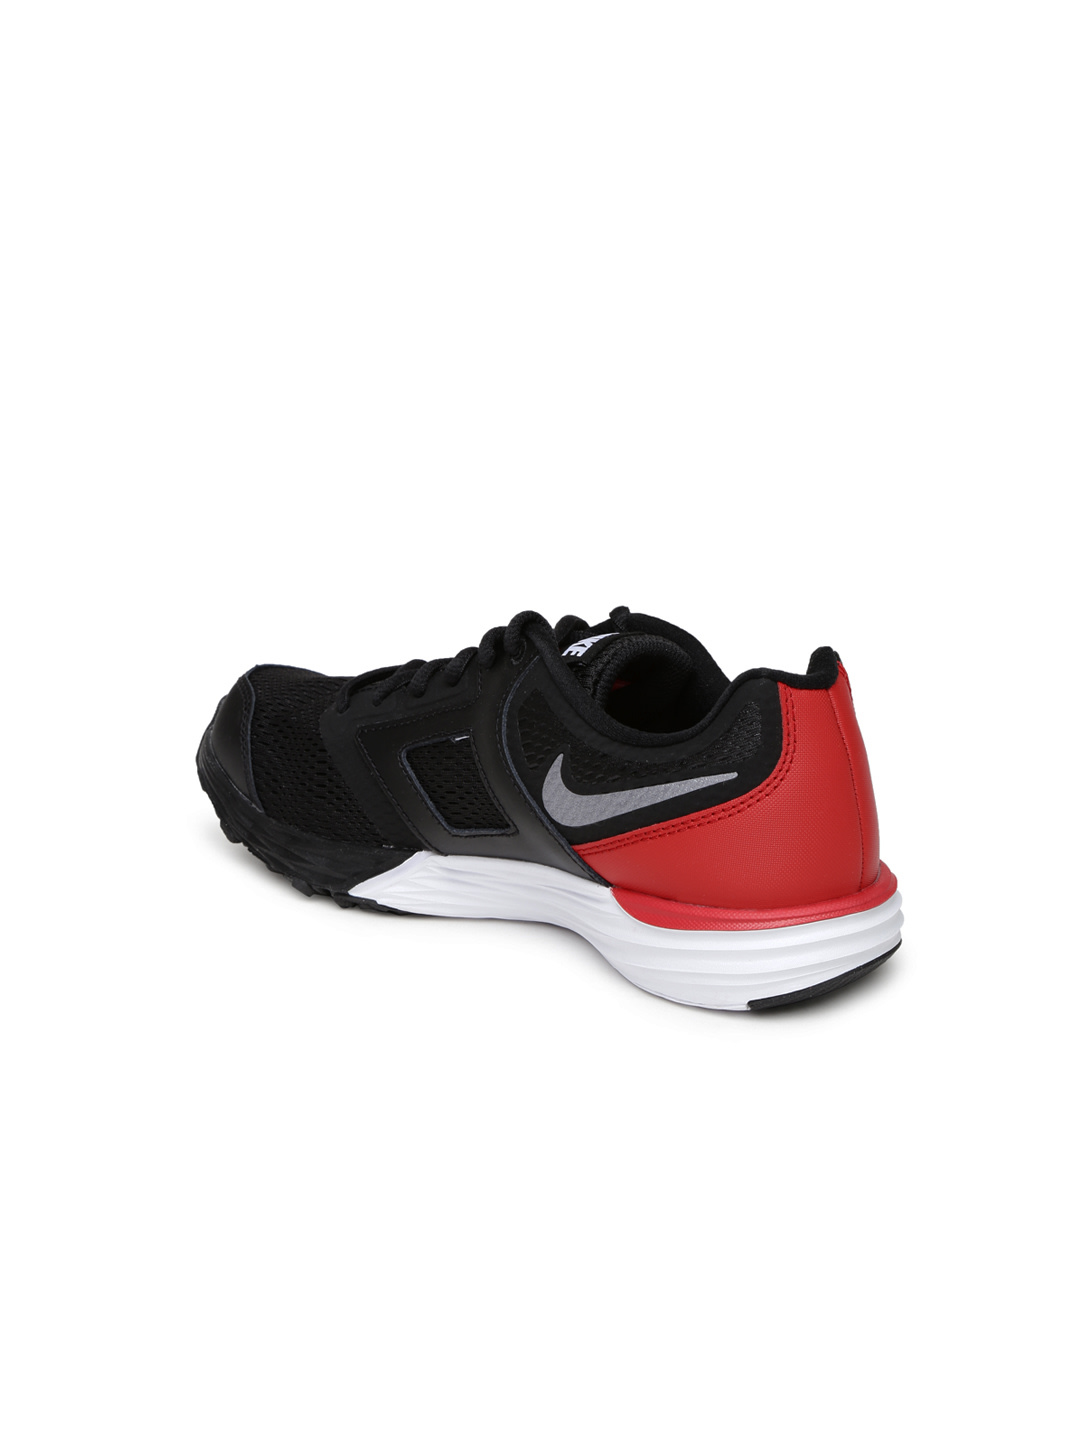 11455615715616-Nike-Boys-Sports-Shoes-3721455615715323-2